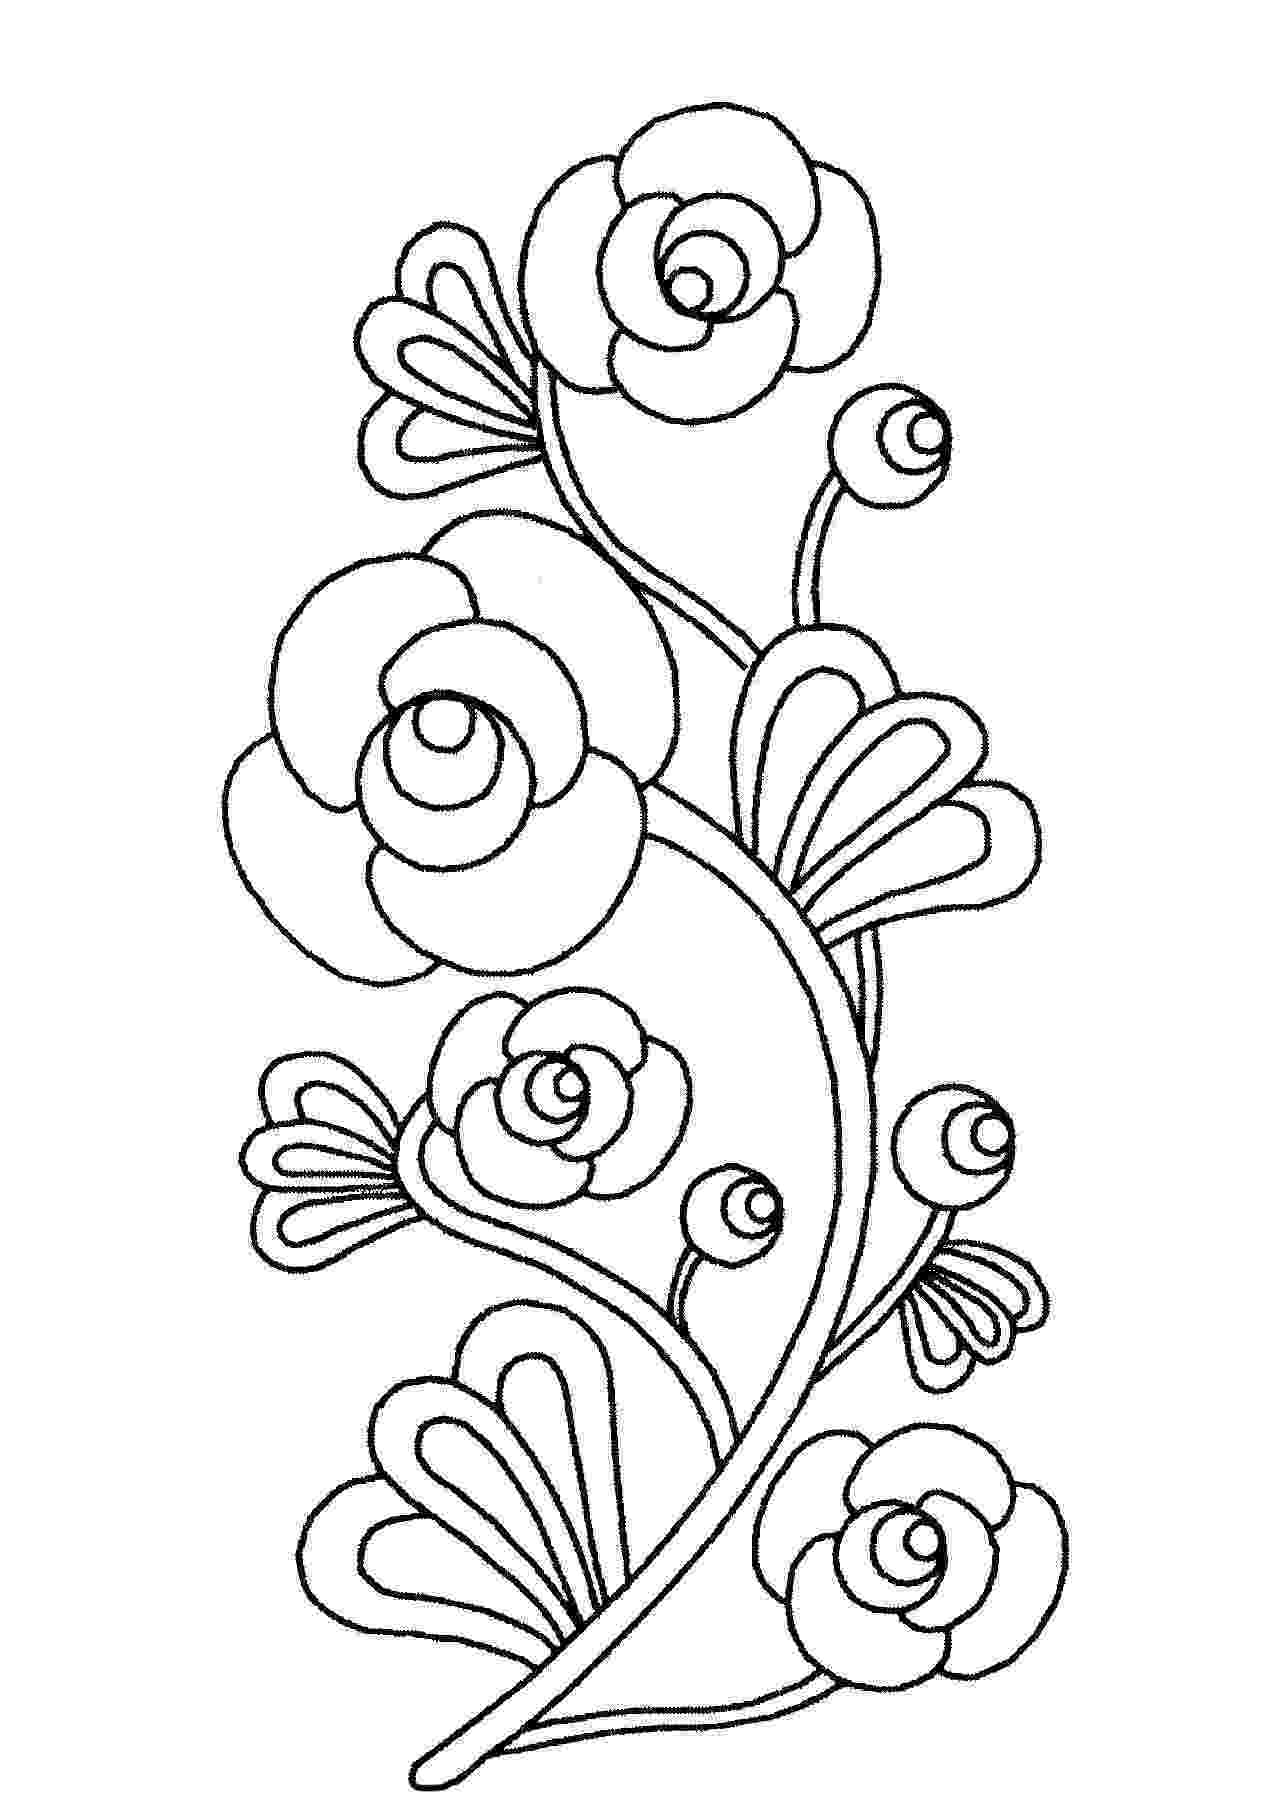 colouring pages of beautiful flowers coloring pages of amazing flowers coloring home pages beautiful colouring flowers of